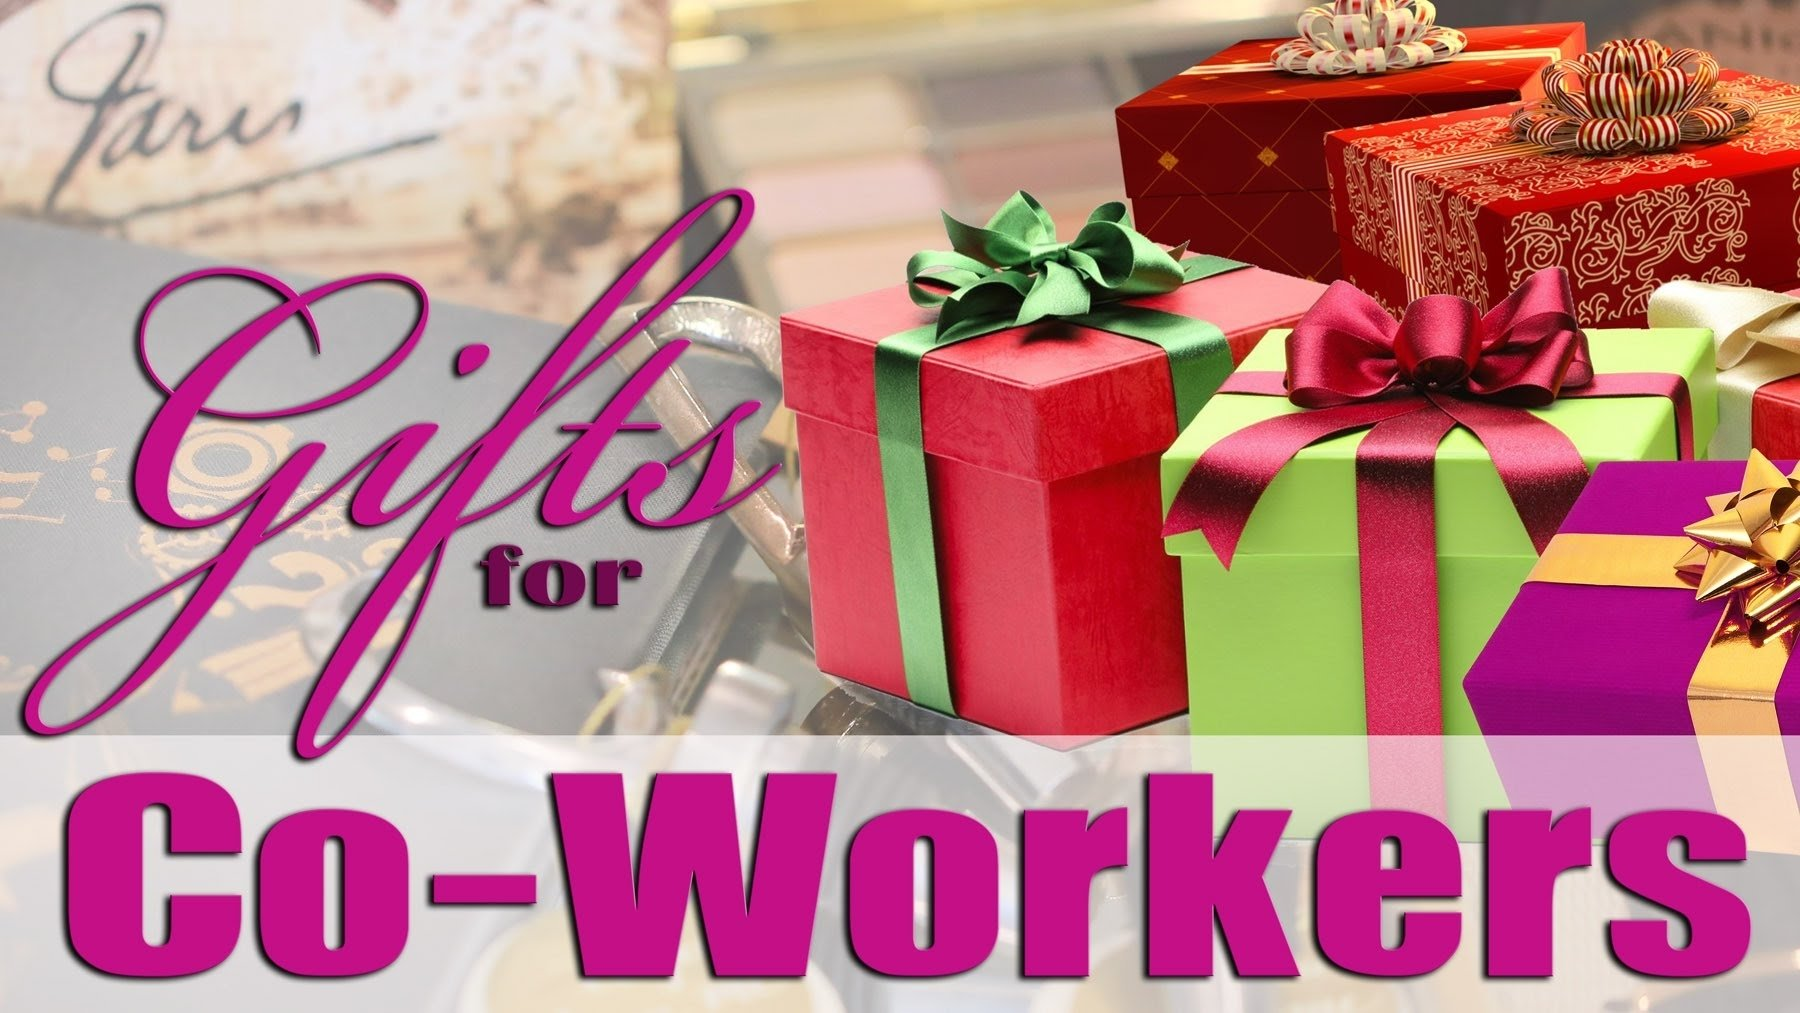 10 Nice Small Gift Ideas For Coworkers gifts ideas for coworkers under 20 youtube 7